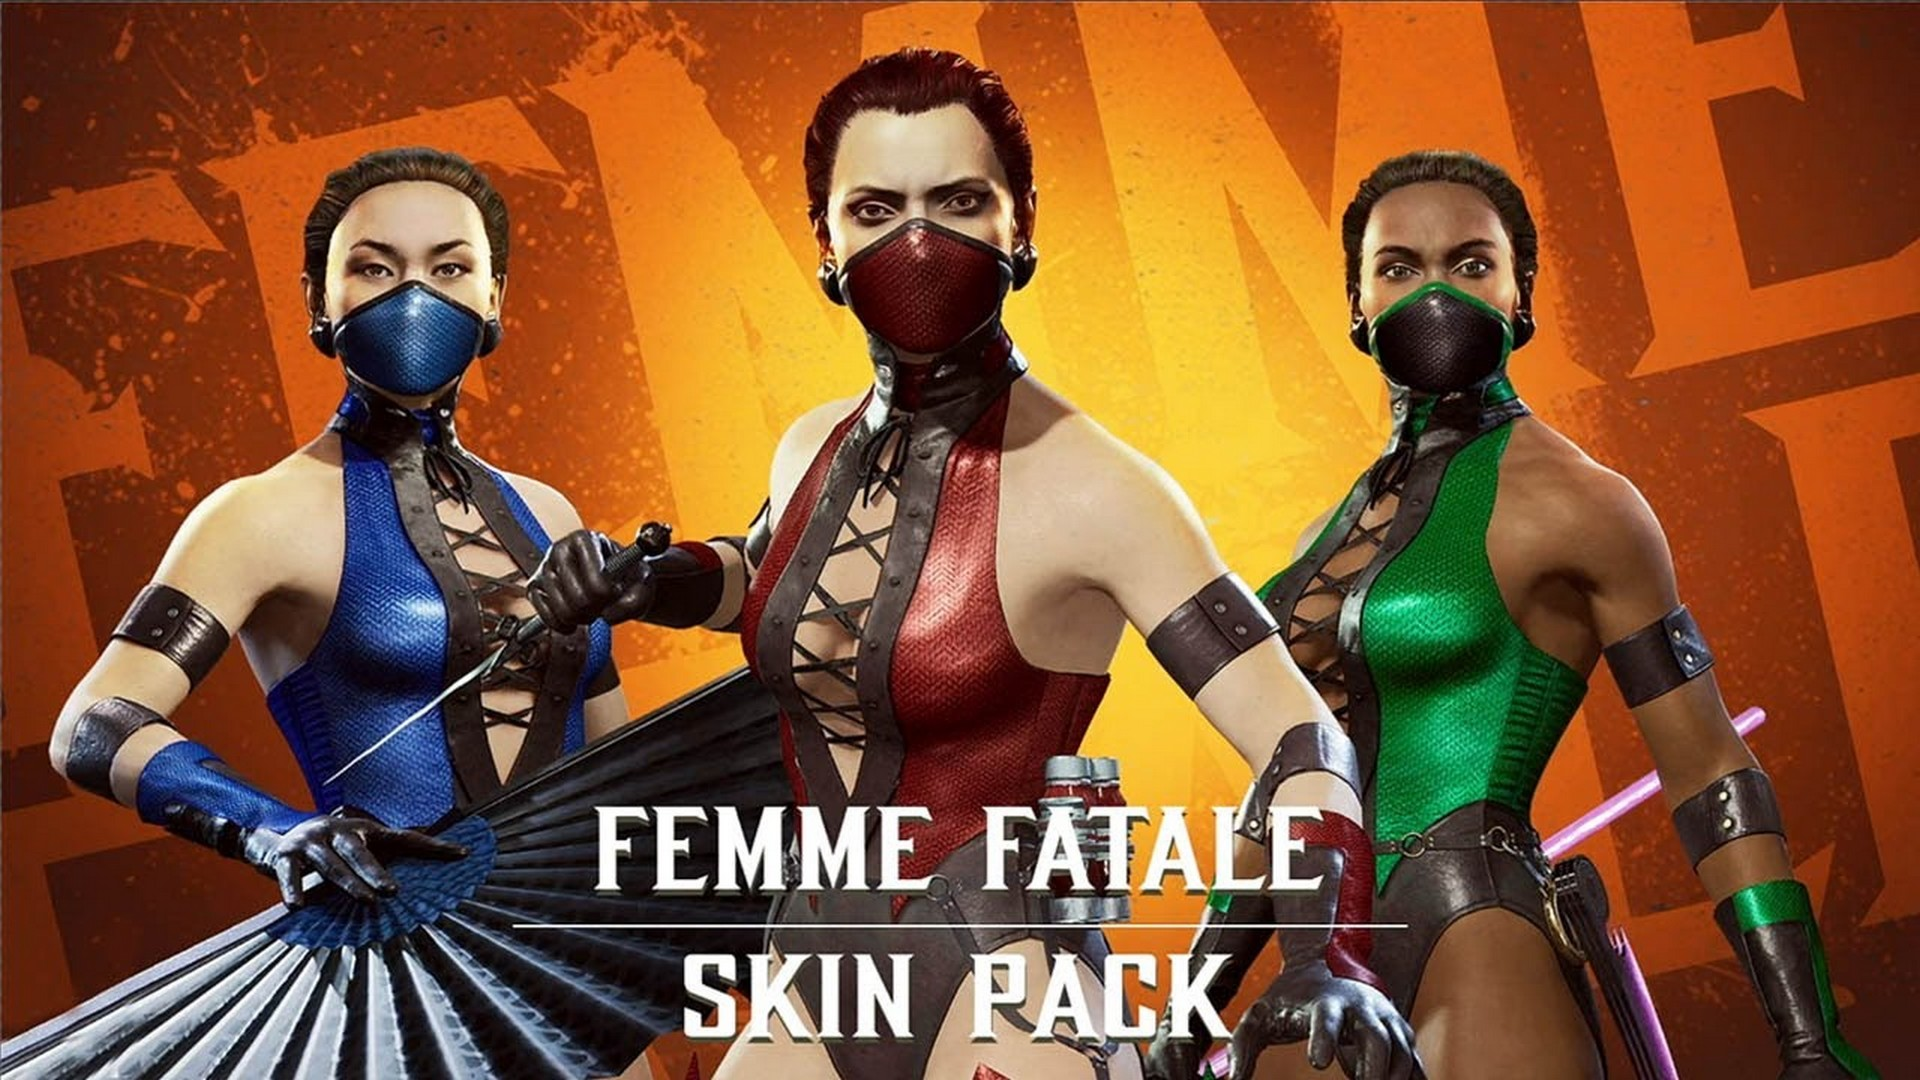 New Klassic Femme Fatale Character Skin Pack Available Now as Part of Mortal Kombat 11: Aftermath Expansion